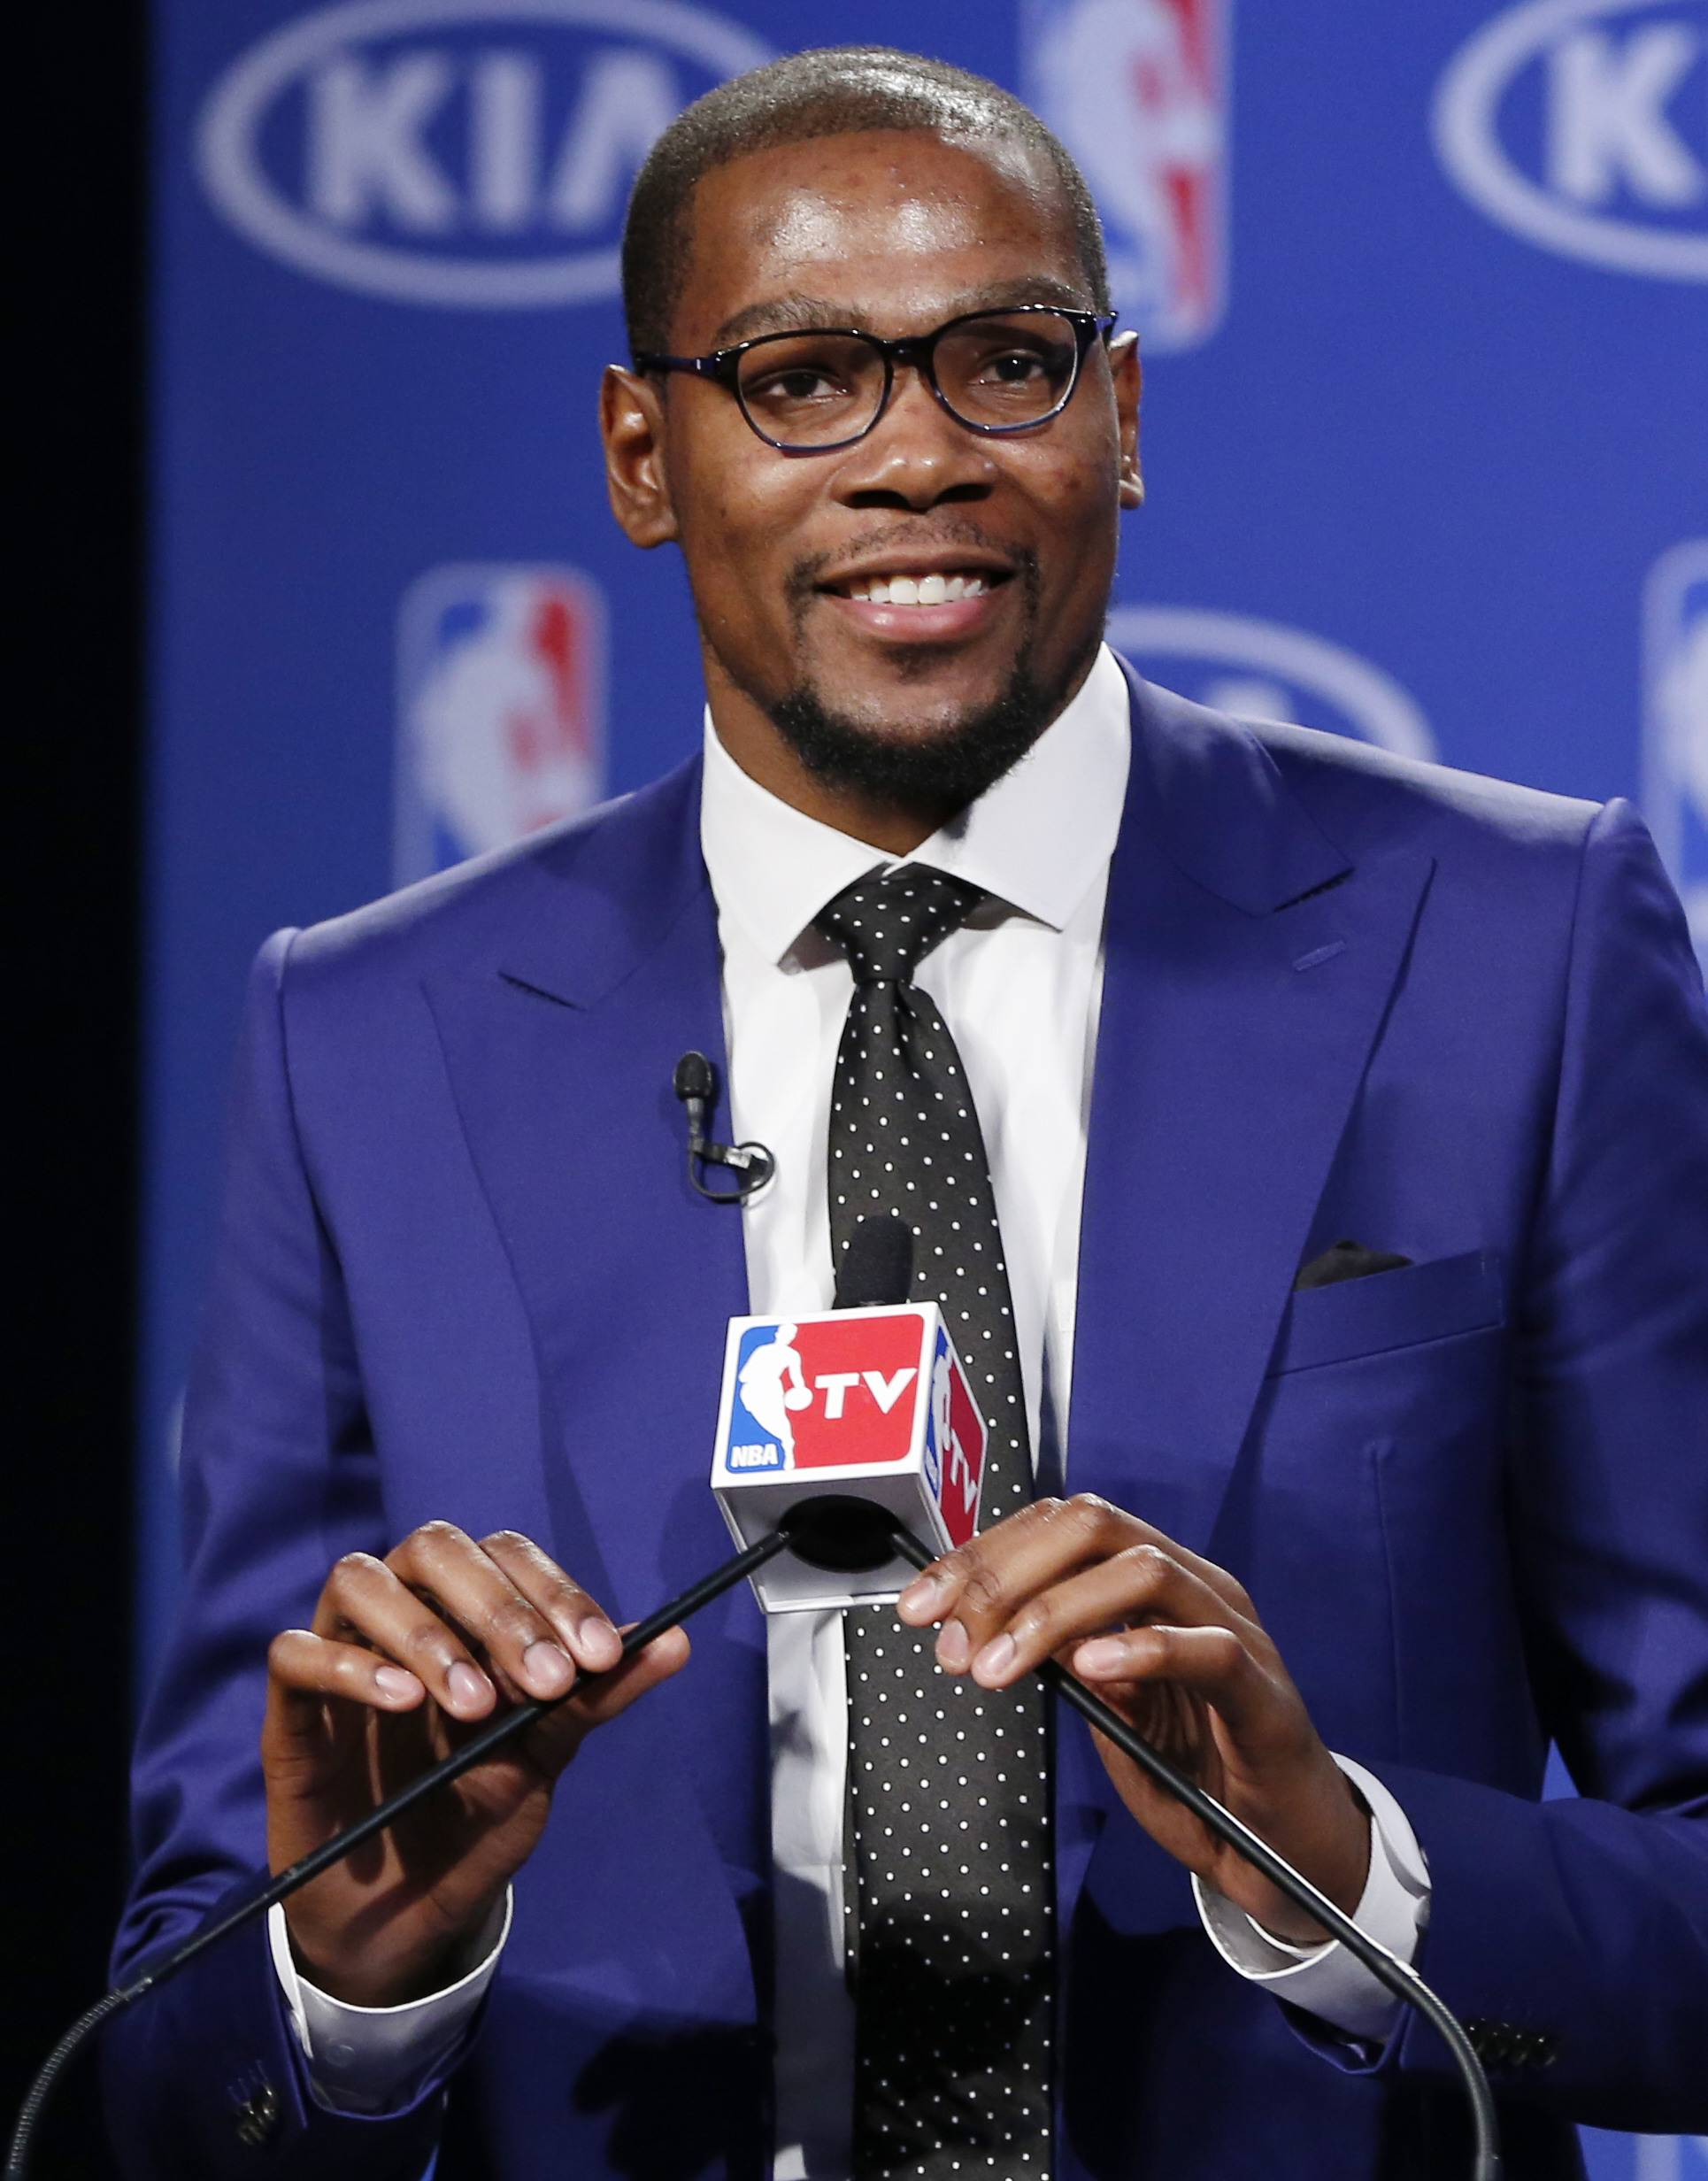 Oklahoma City Thunder's Kevin Durant speaks at the news conference announcing that that Durant is the winner of the 2013-14 Kia NBA Basketball Most Value Player Award in Oklahoma City, Tuesday, May 6, 2014. (AP Photo/Sue Ogrocki)